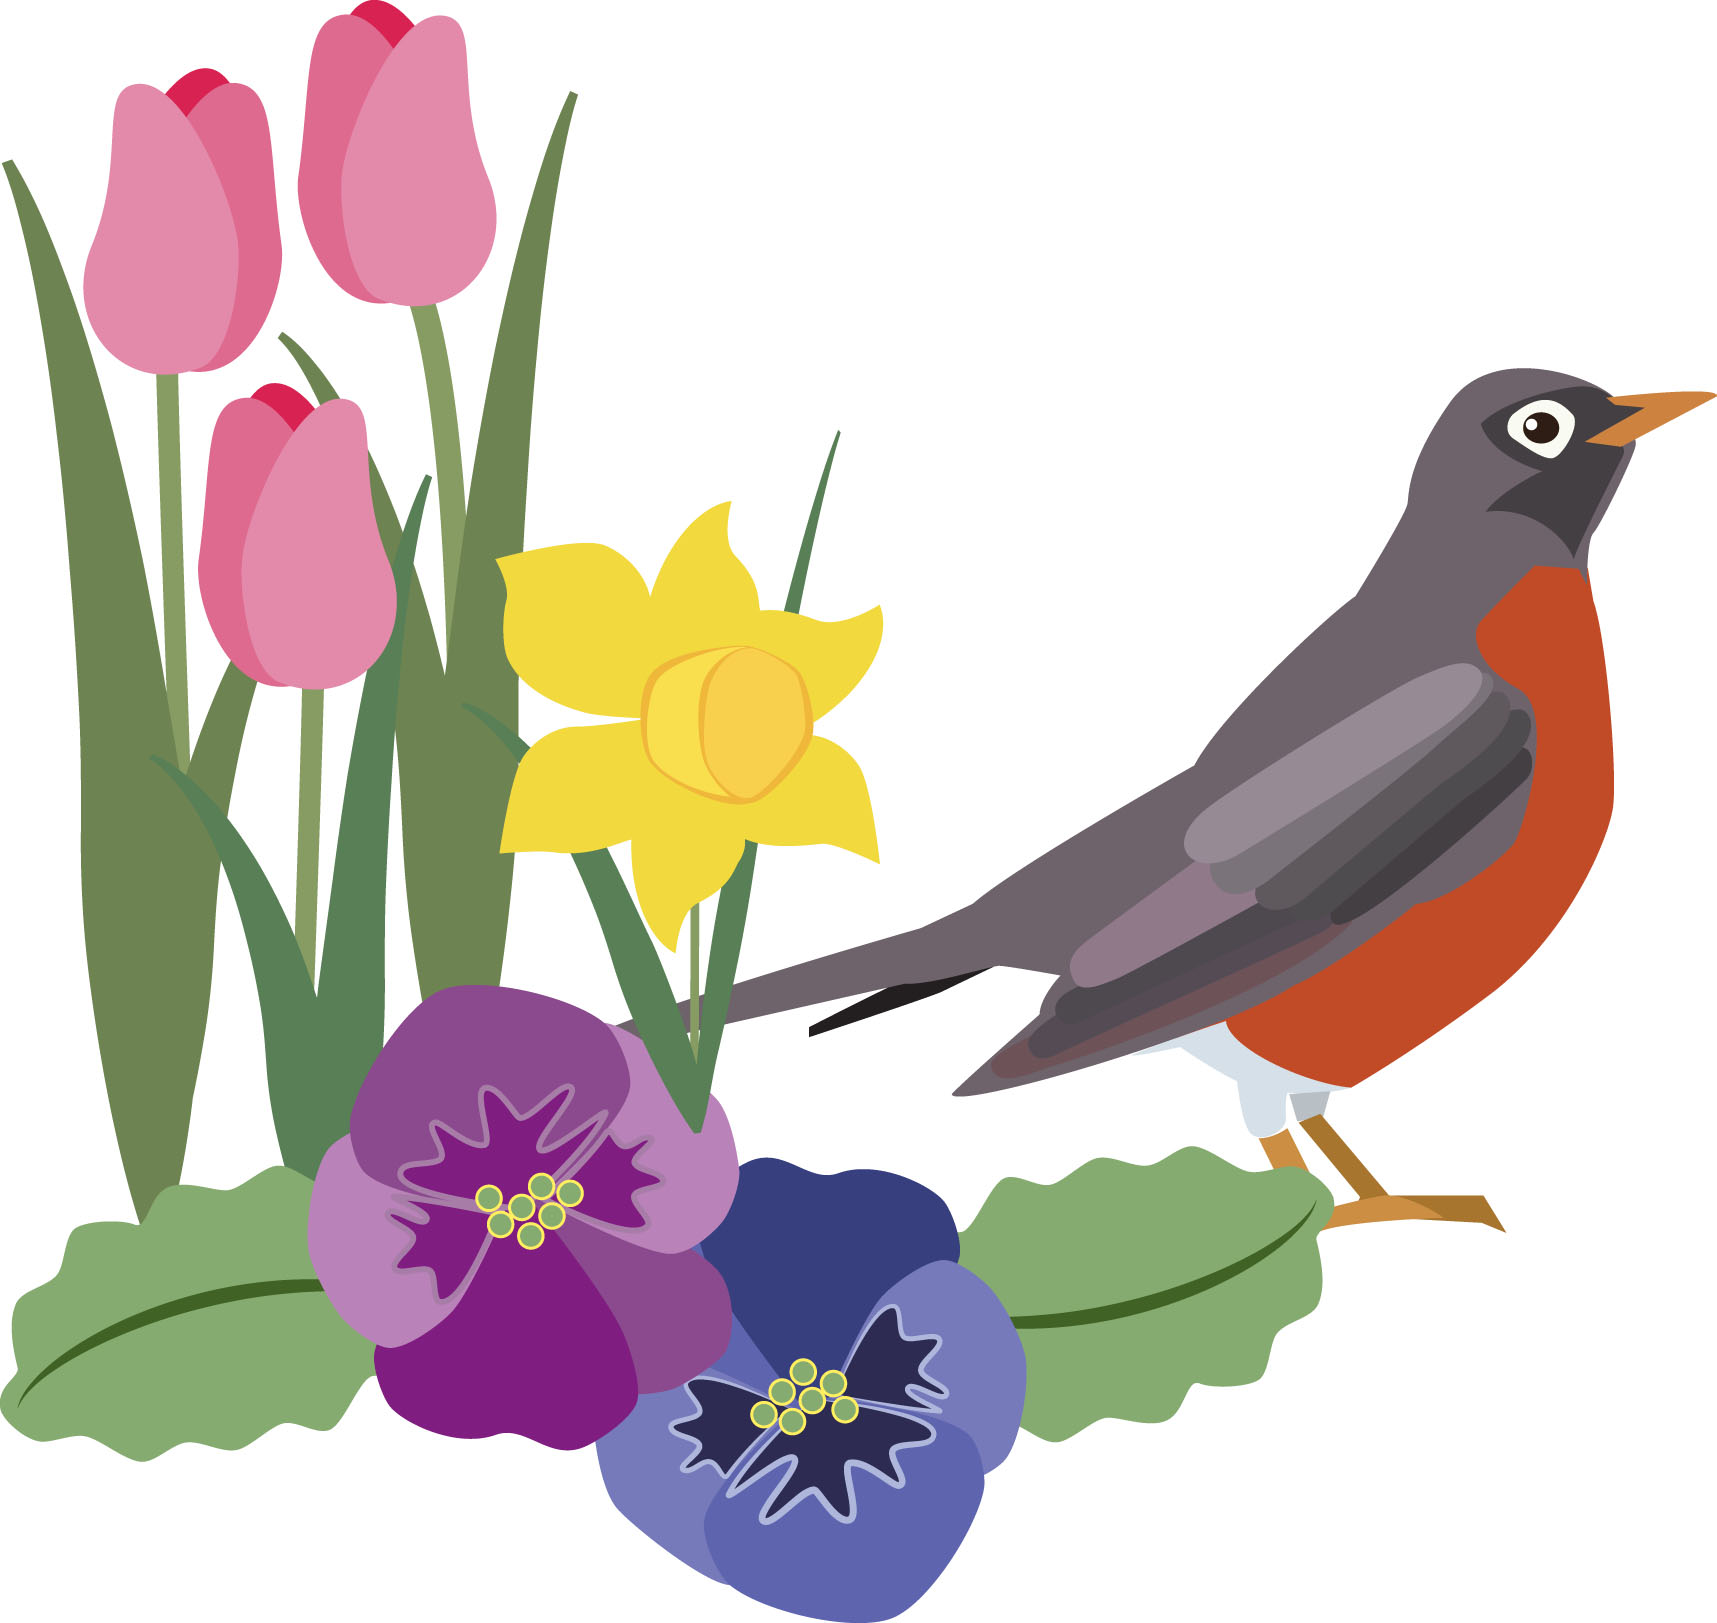 Christian Spring Clipart at GetDrawings.com.